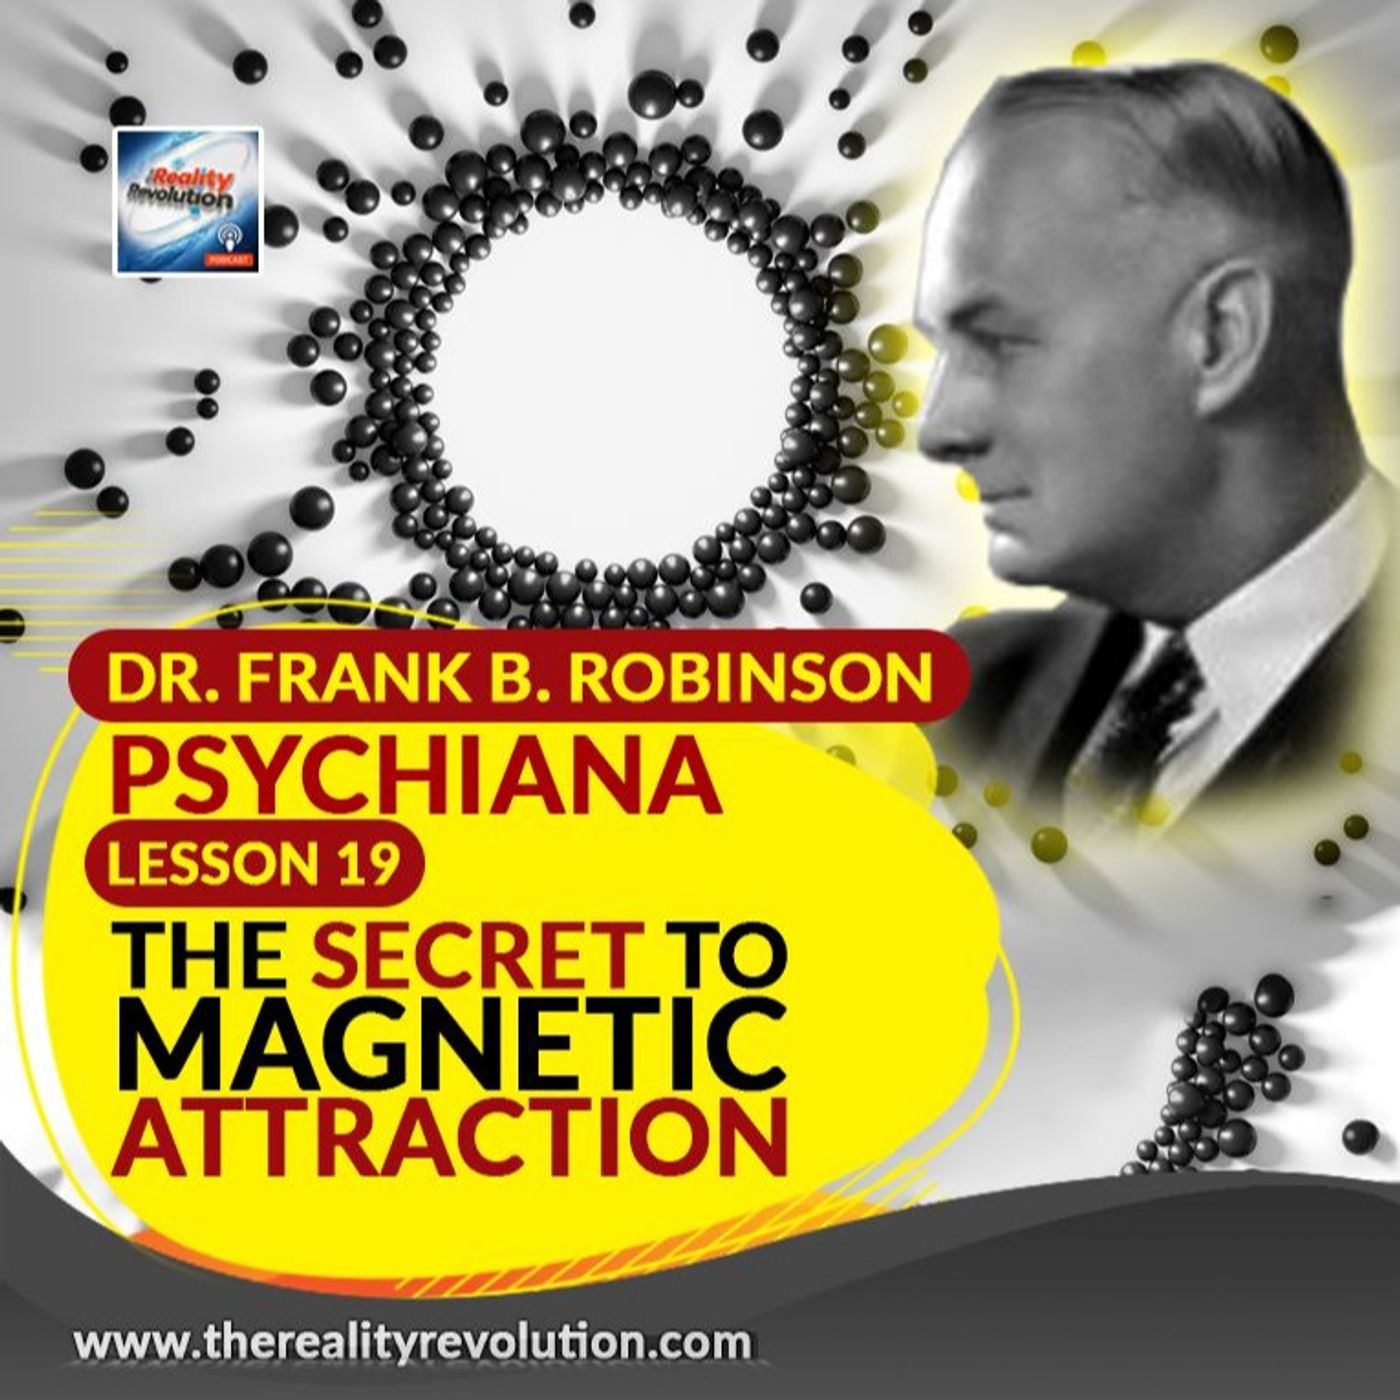 Dr  Frank B  Robinson Psyr-frank-b-robinson-psychiana-lesson-19-the-secret-to-magnetic-attractionchiana - Lesson 19 The Secret To Magnetic Attraction